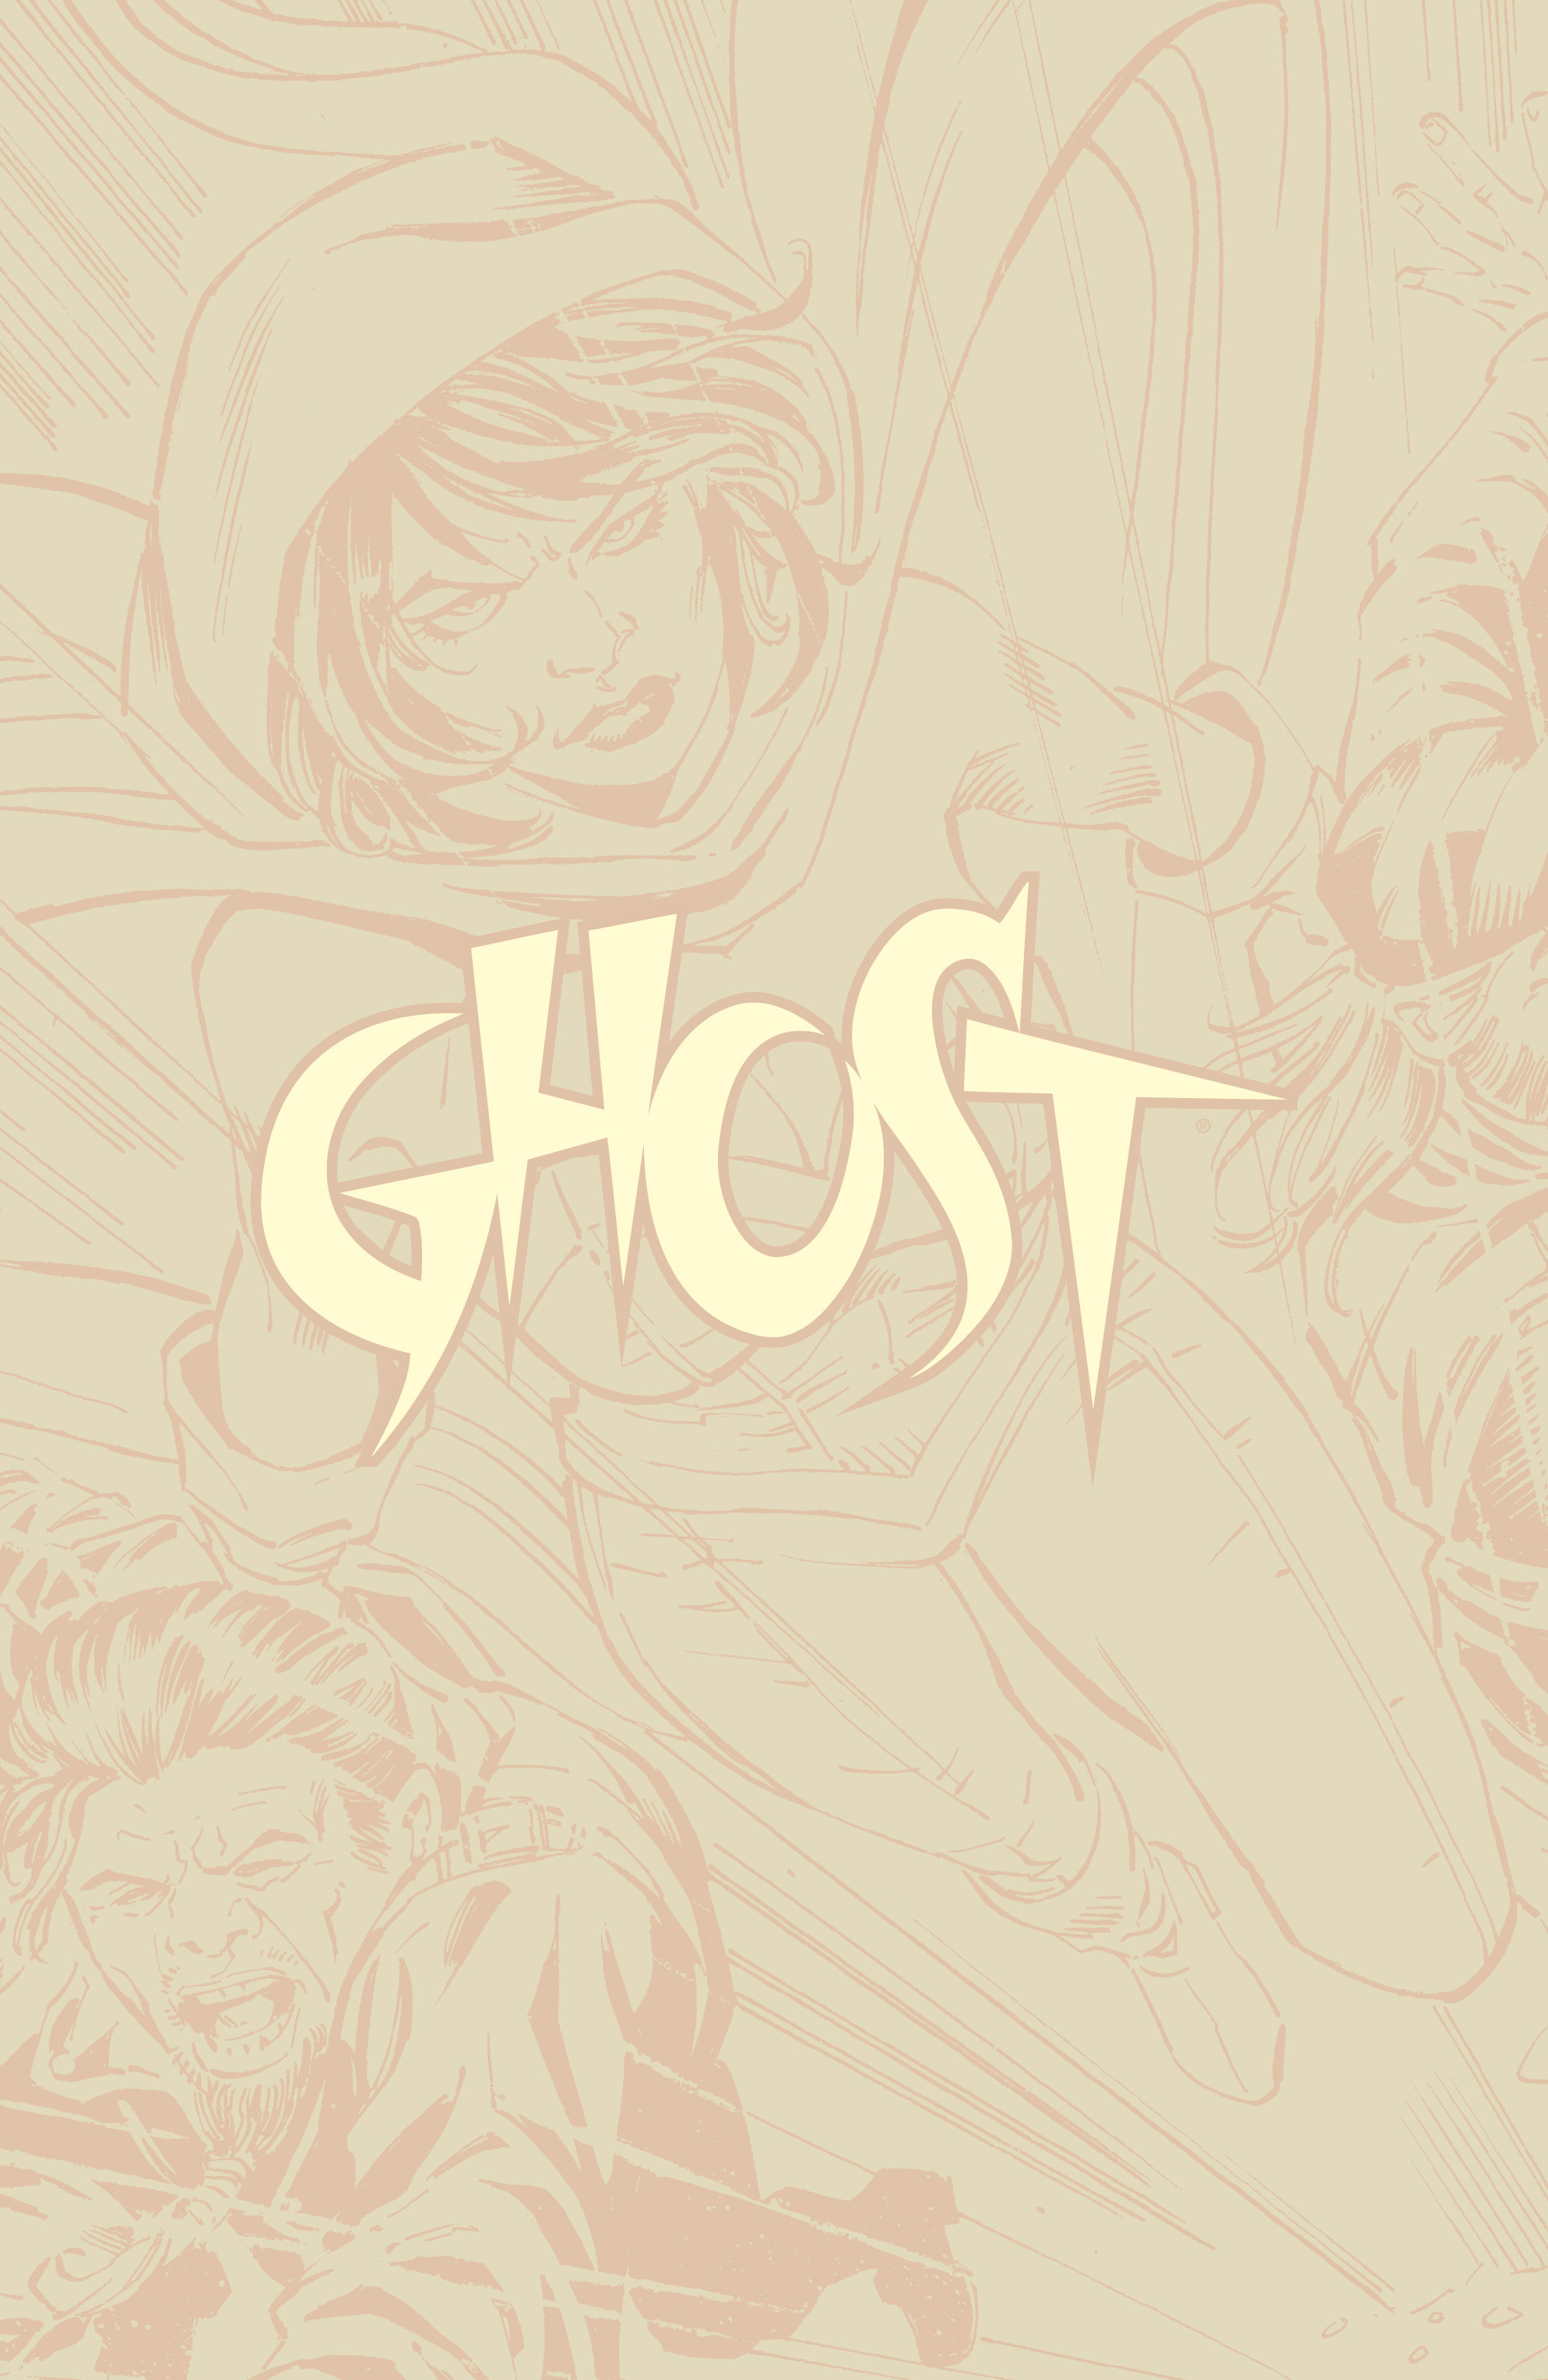 Read online Ghost (2013) comic -  Issue # TPB 2 - 7